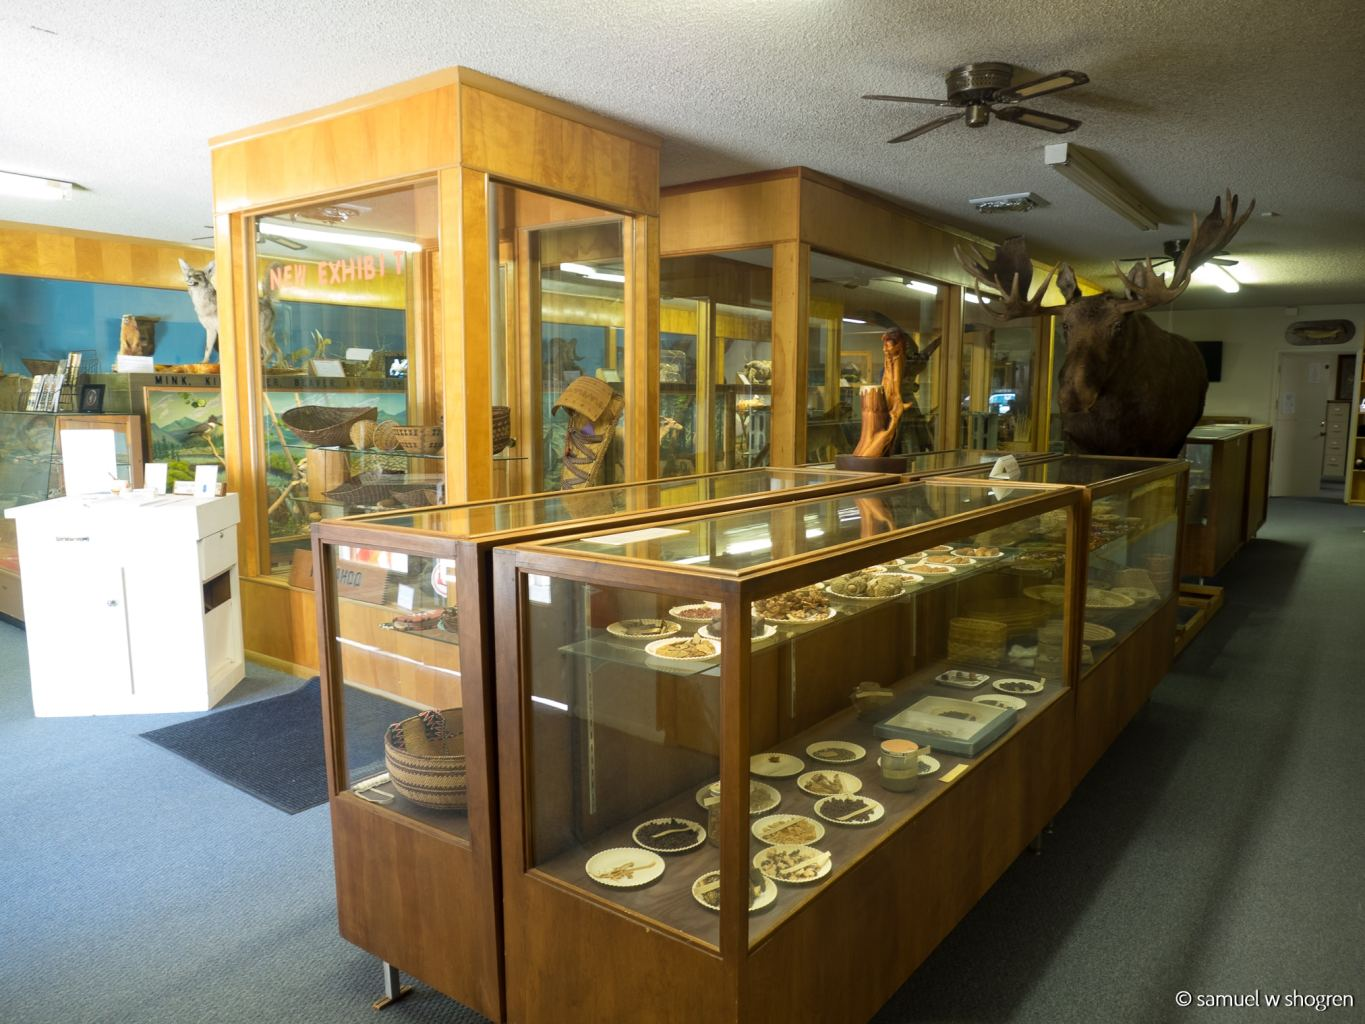 An interior of the museum with art and artifacts on display in glass cases.